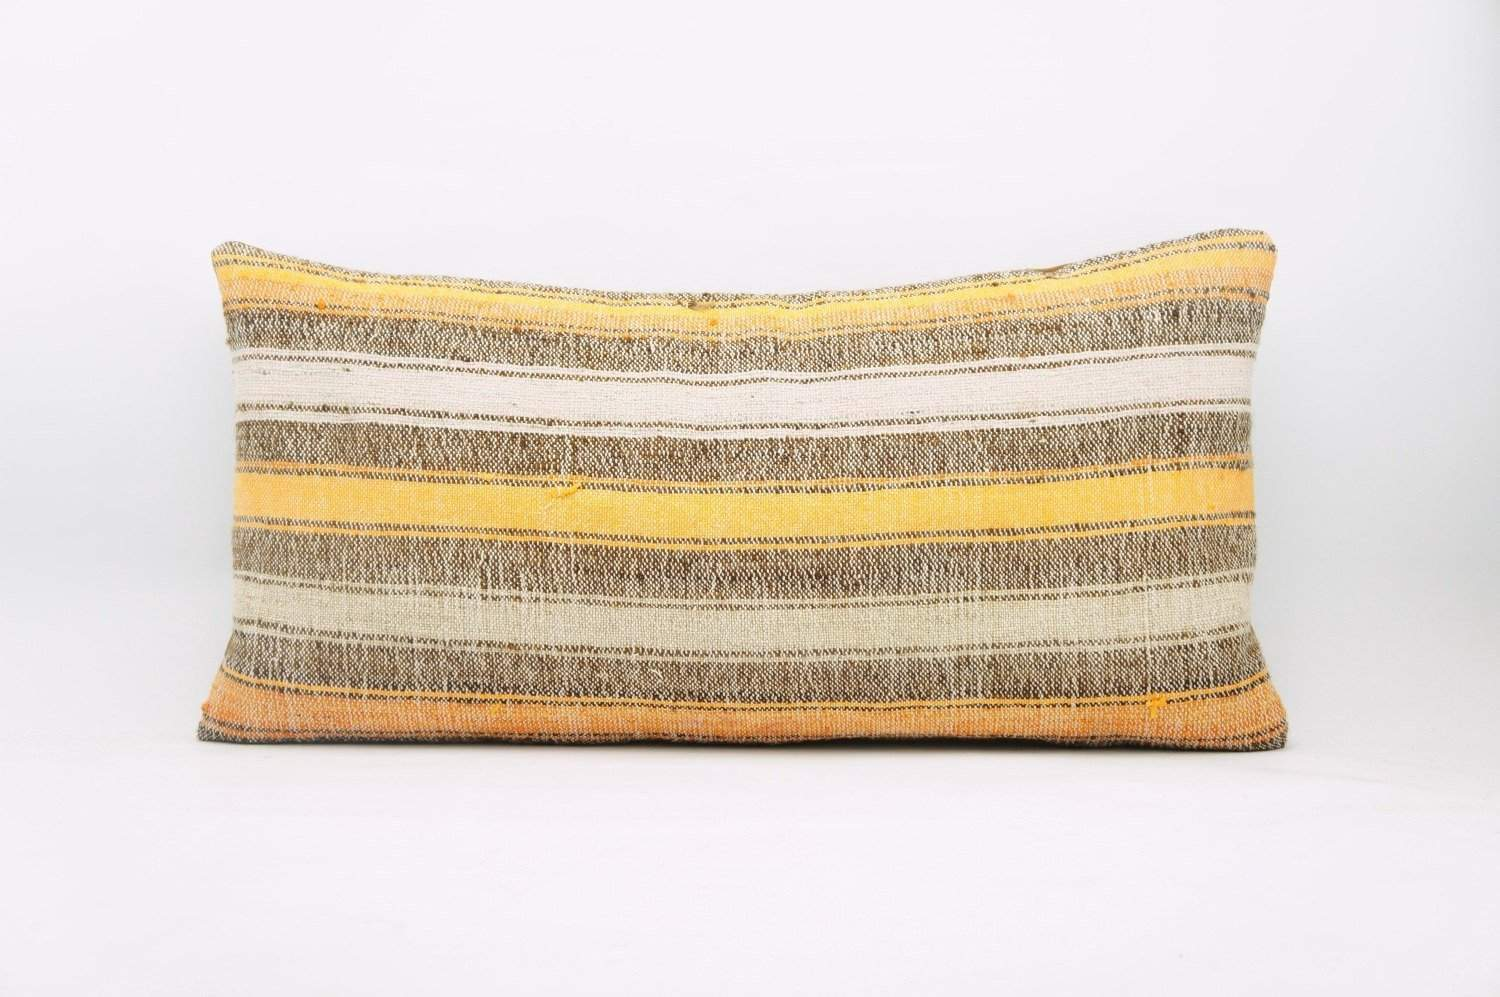 12x24 Vintage Hand Woven Kilim Pillow Lumbar Bohemian pillow case, Modern home decor orange white brown striped 953